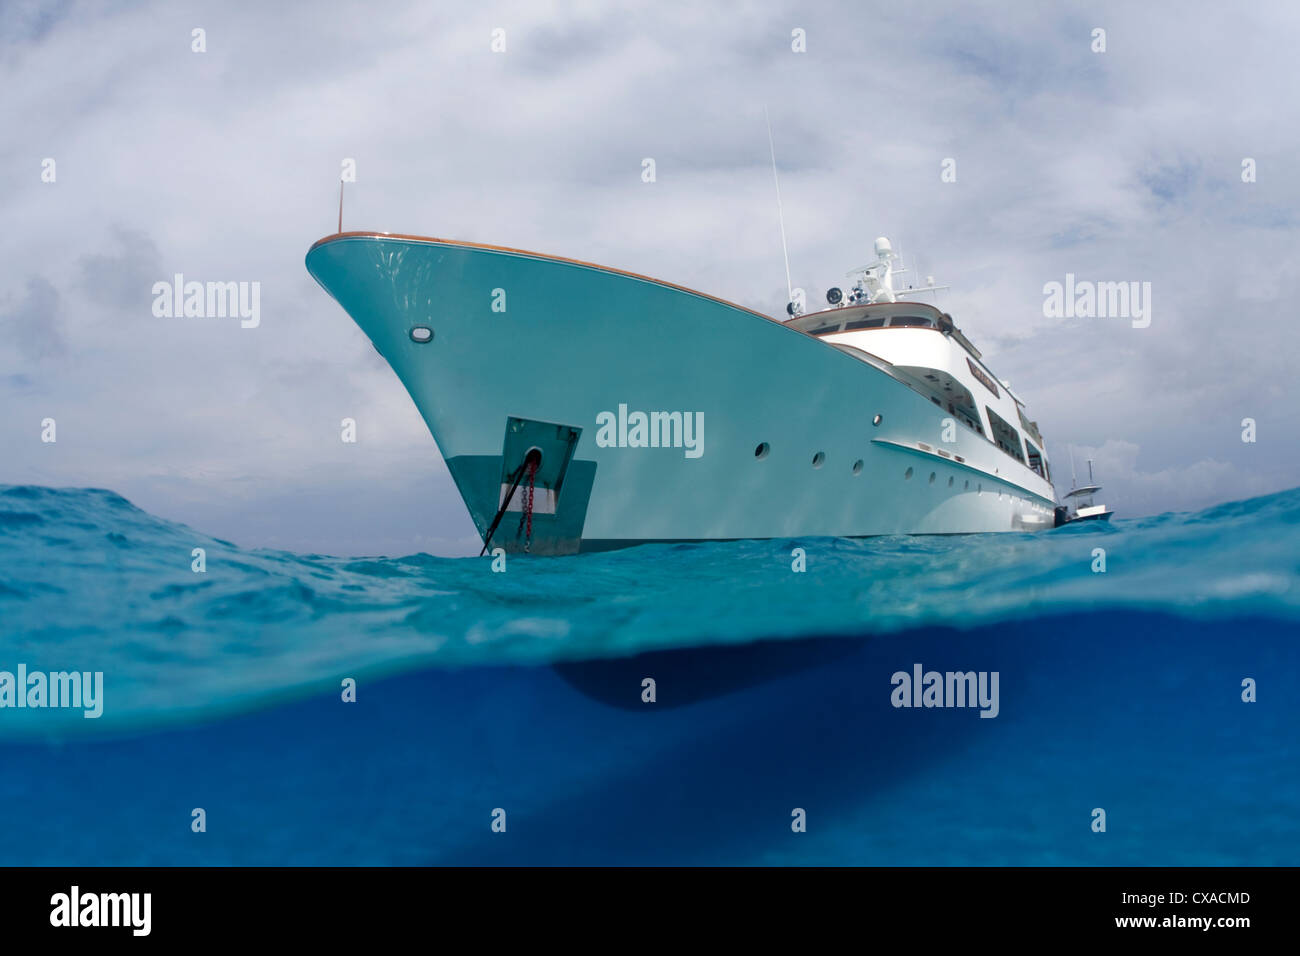 A split water view of a yacht in the Bahamas. - Stock Image